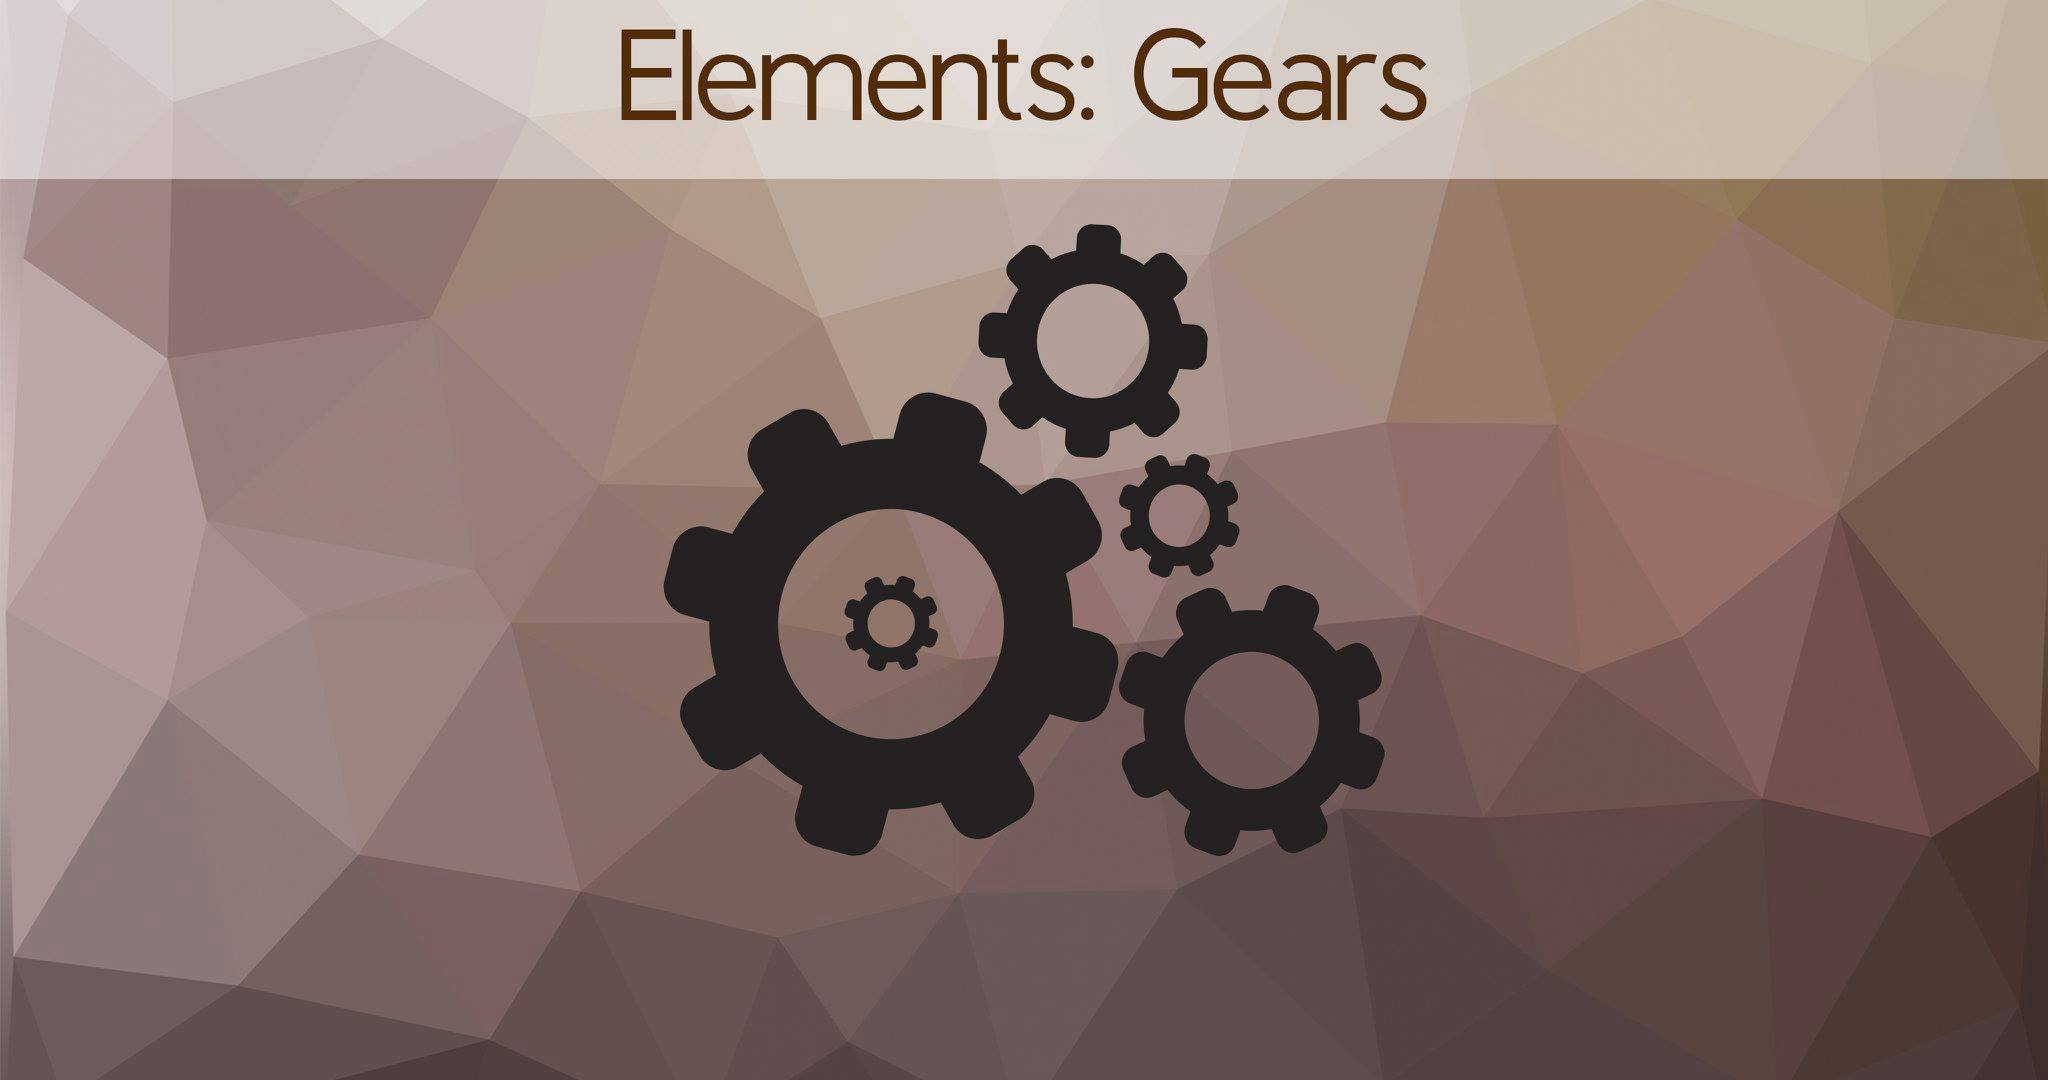 Elements Gears (Wallpaper).jpg